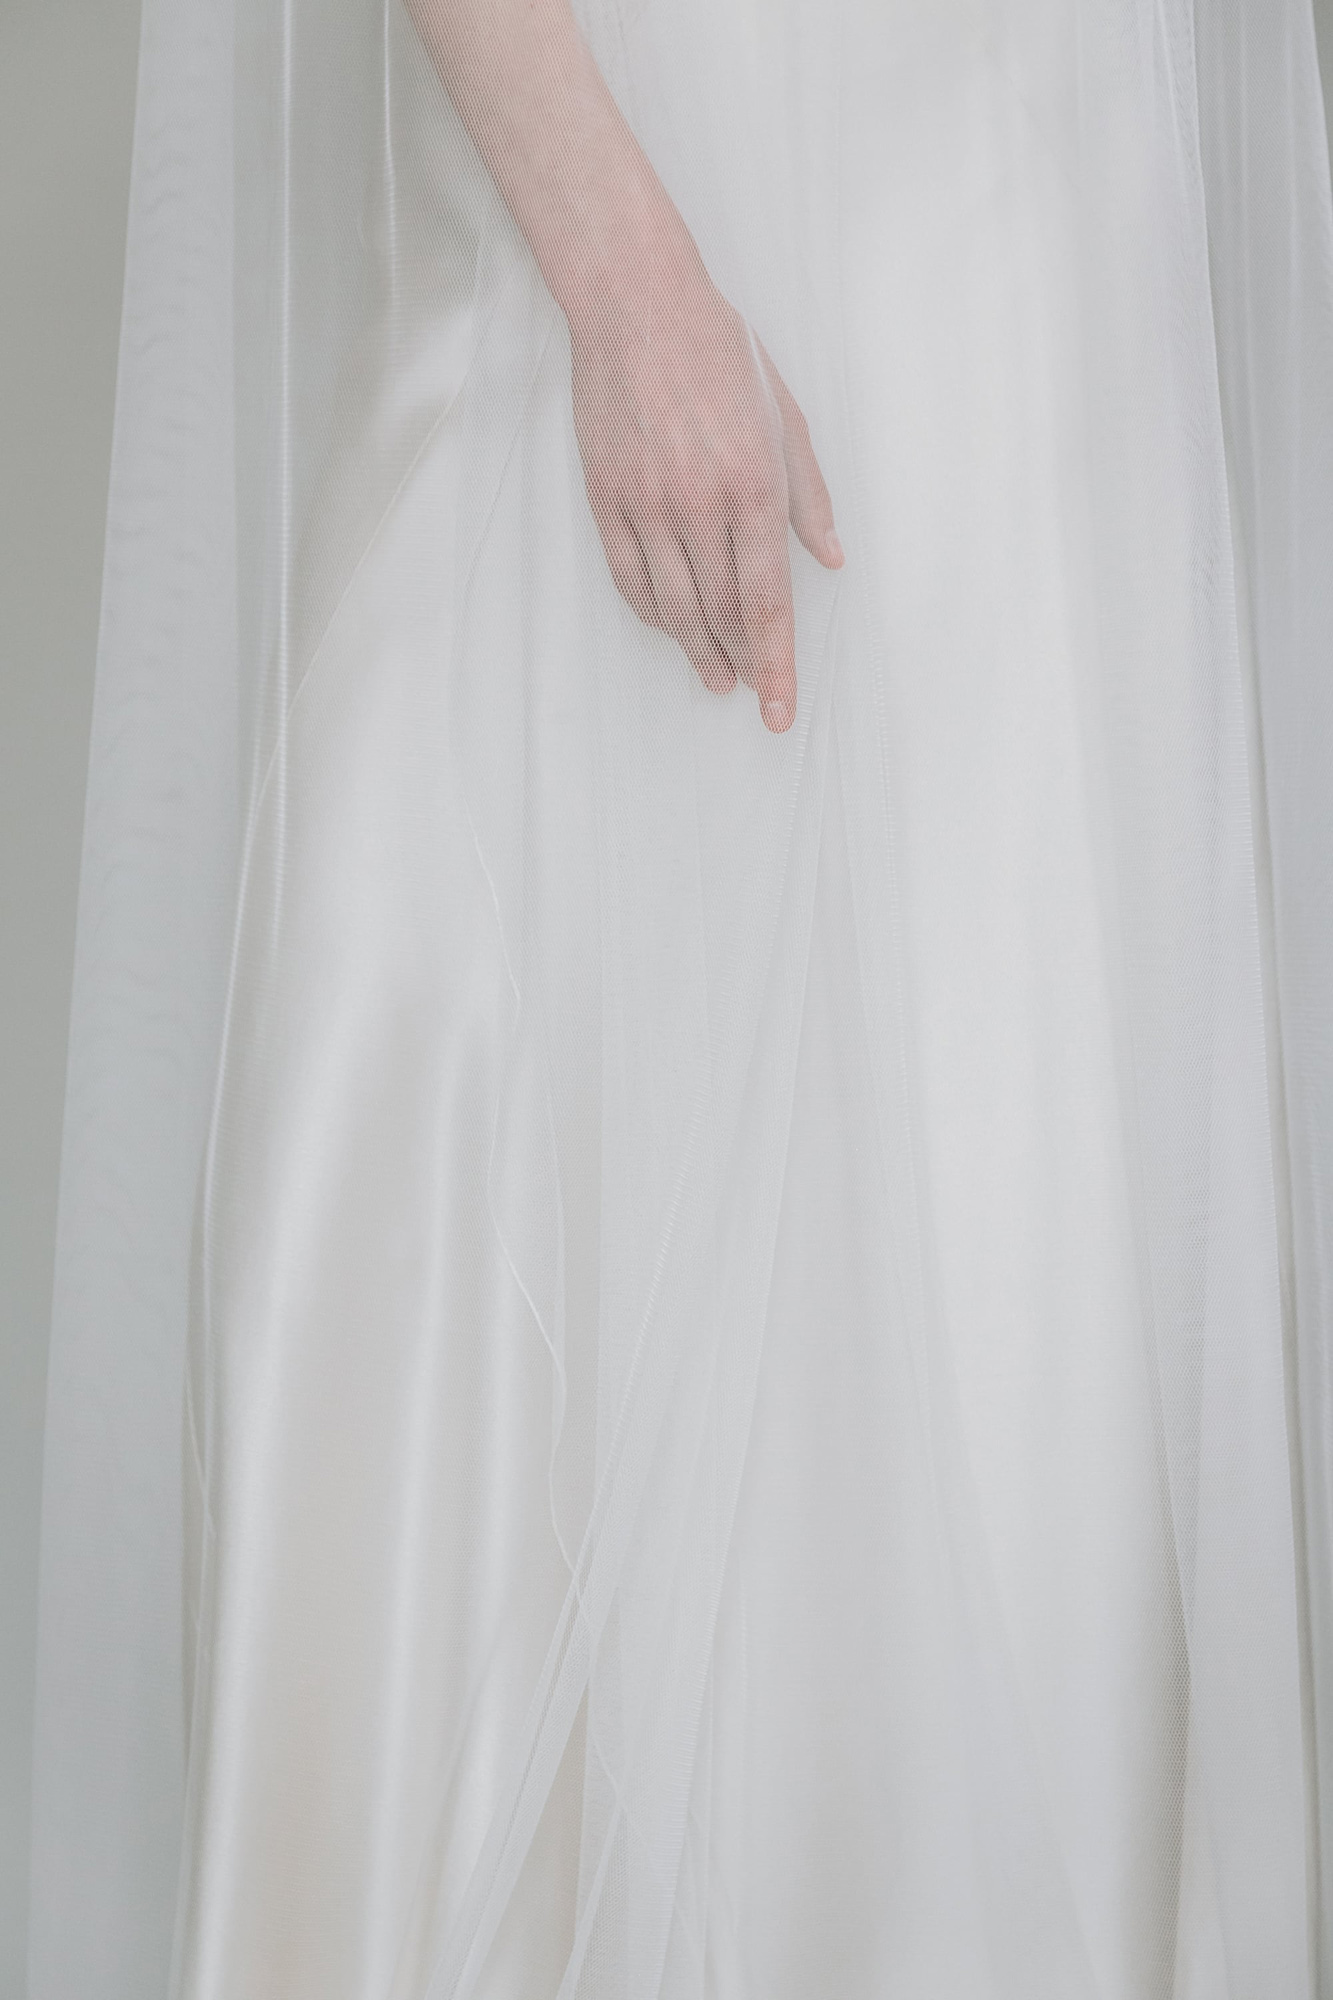 Kate-Beaumont-Sheffield-Picot-Edge-Silky-Tulle-Ethereal-Veil-6.jpg